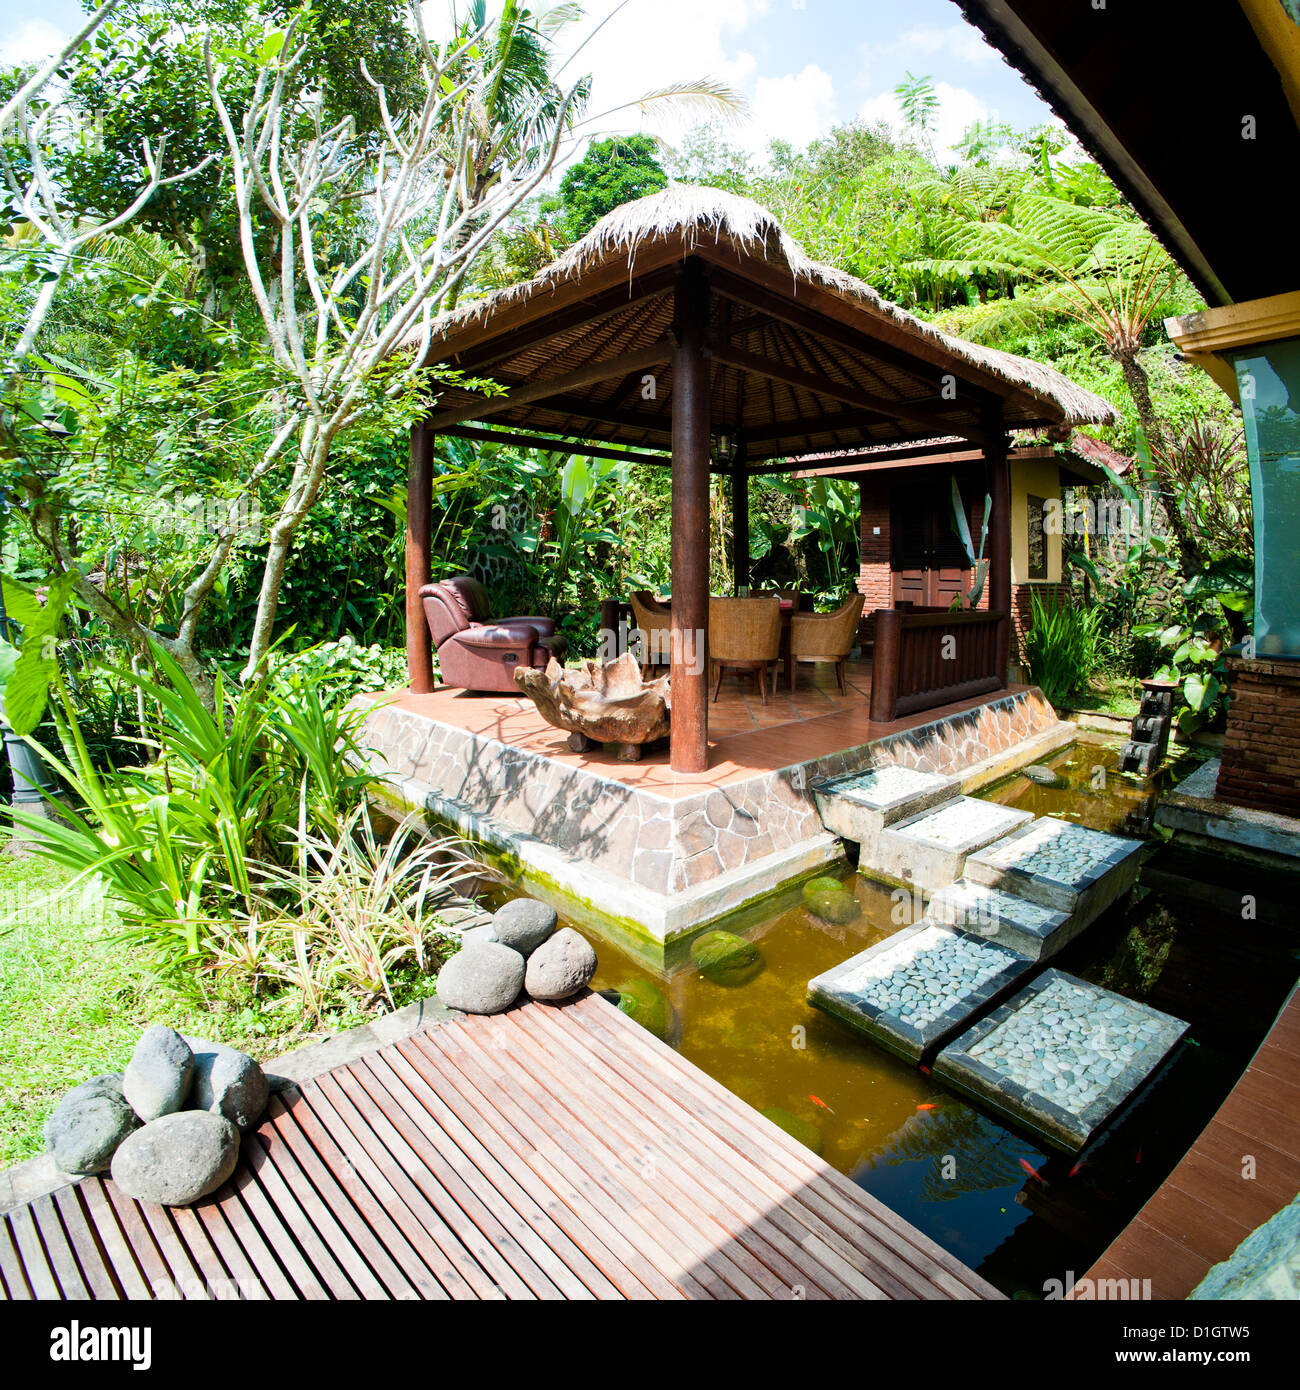 Outdoor area at luxury accommodation near Ubud on the island of Bali, Indonesia, Southeast Asia, Asia - Stock Image